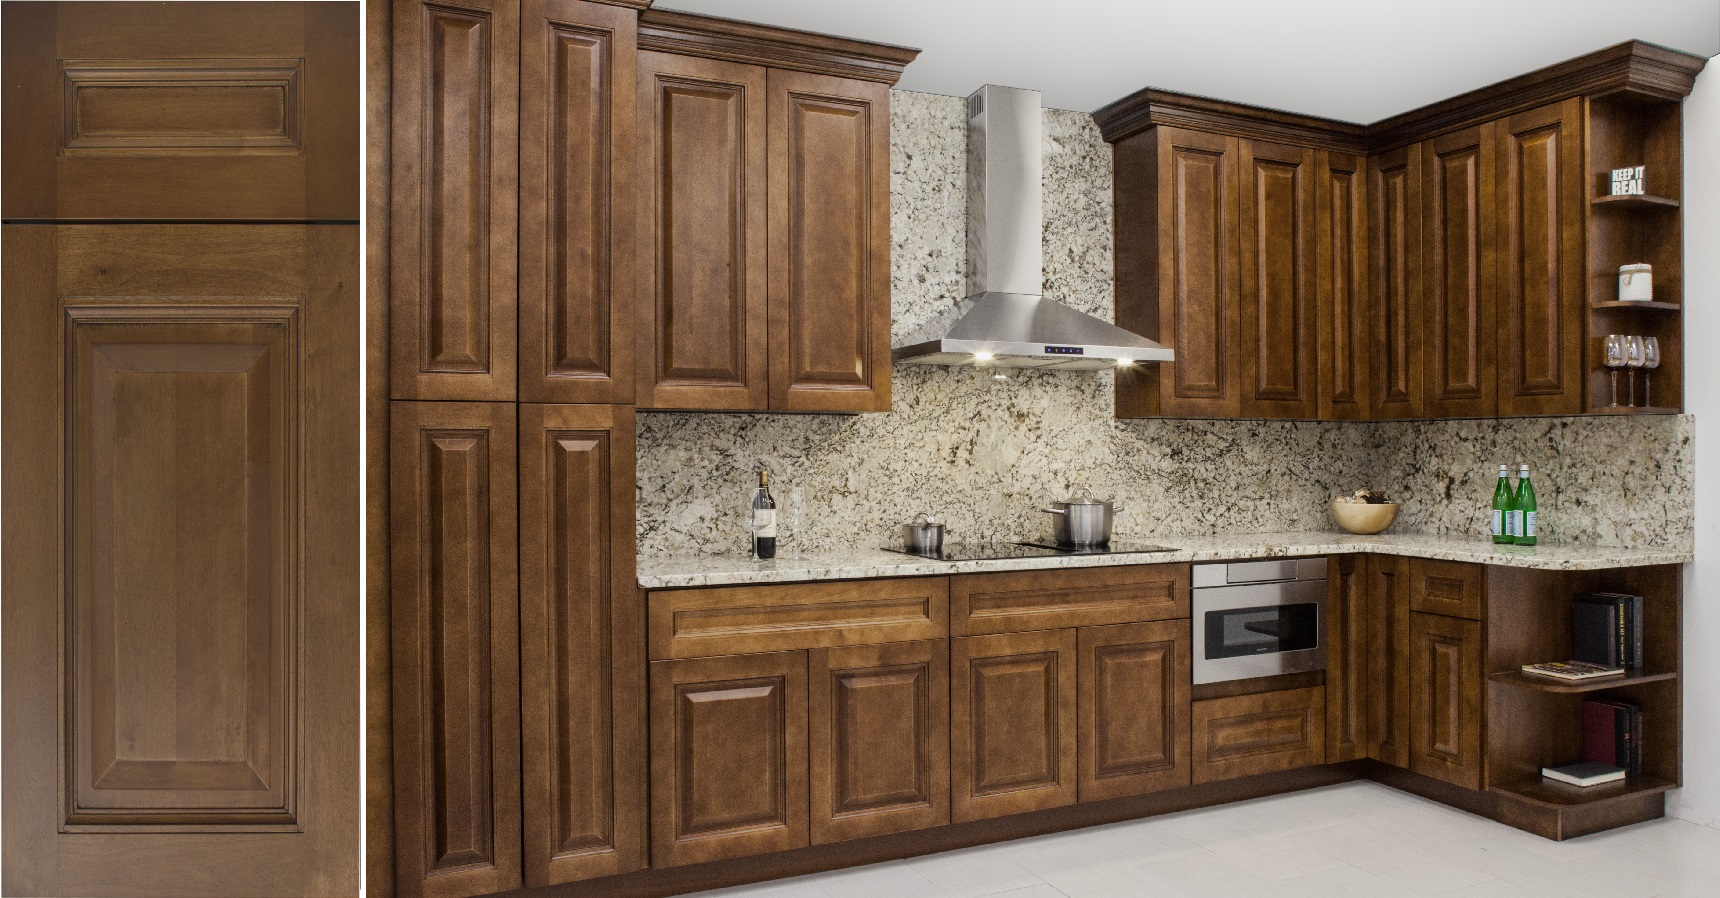 Frameless cabinet san antonio kitchen remodeling contractors stone oak bathroom remodeling alamo heights affordable kitchen cabinet installation boerne kitchen cabinet store helotes Maduro Frameless cabinets Dark brown shaker cabinets kitchen bathroom renovation service